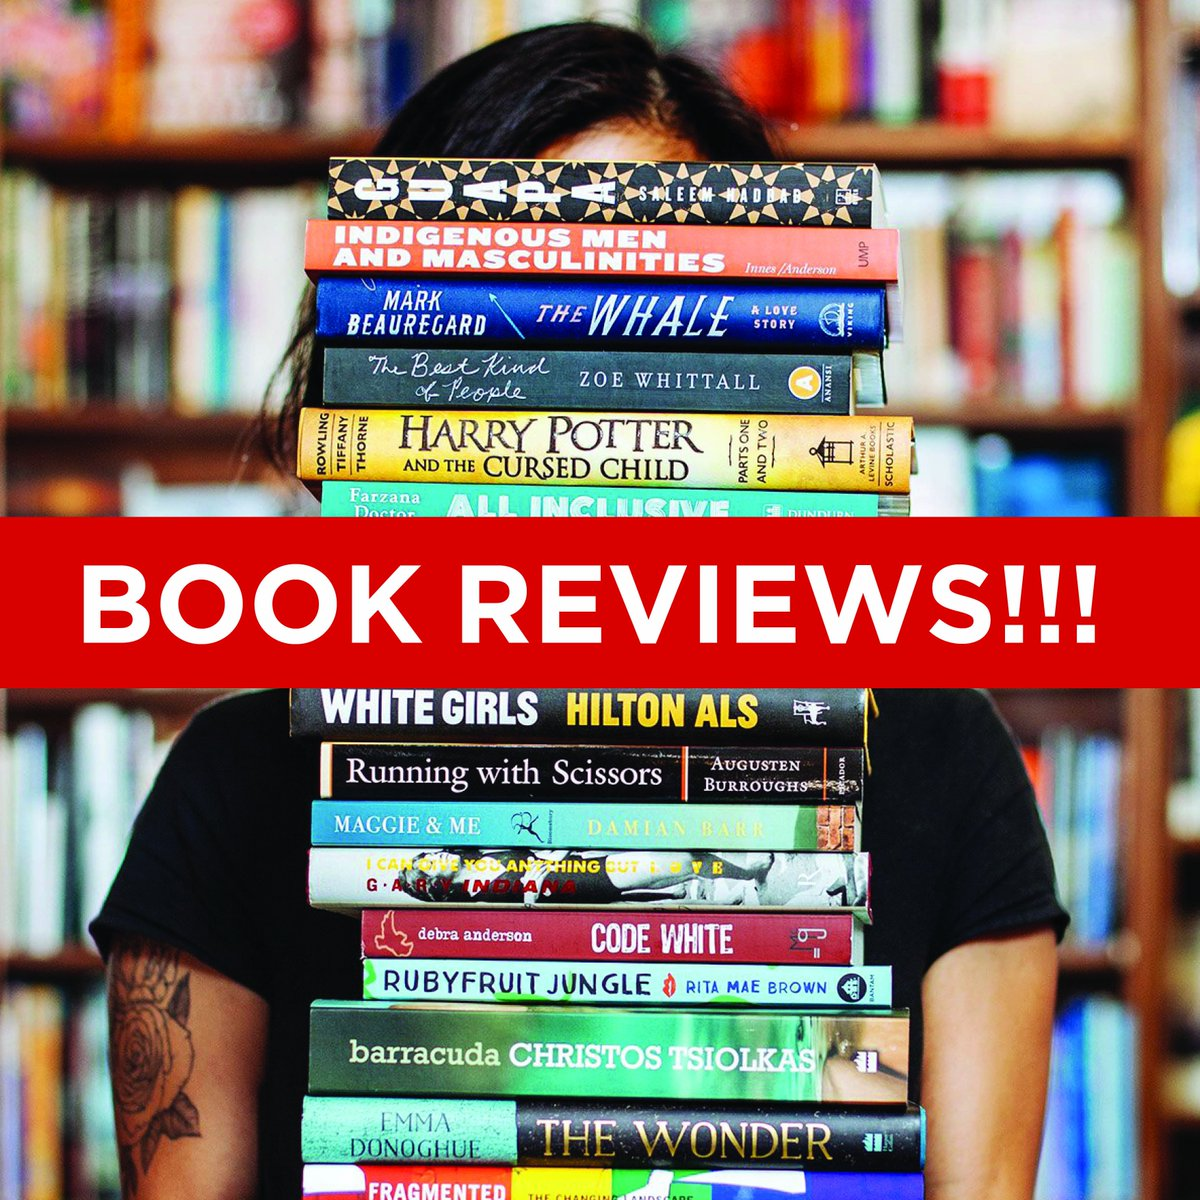 We are about to start reviewing books because we&#39;ve stopped being lazy. Off course, we can&#39;t promise that this isn&#39;t a phase. #BookReviews <br>http://pic.twitter.com/CYiRKOyYHs